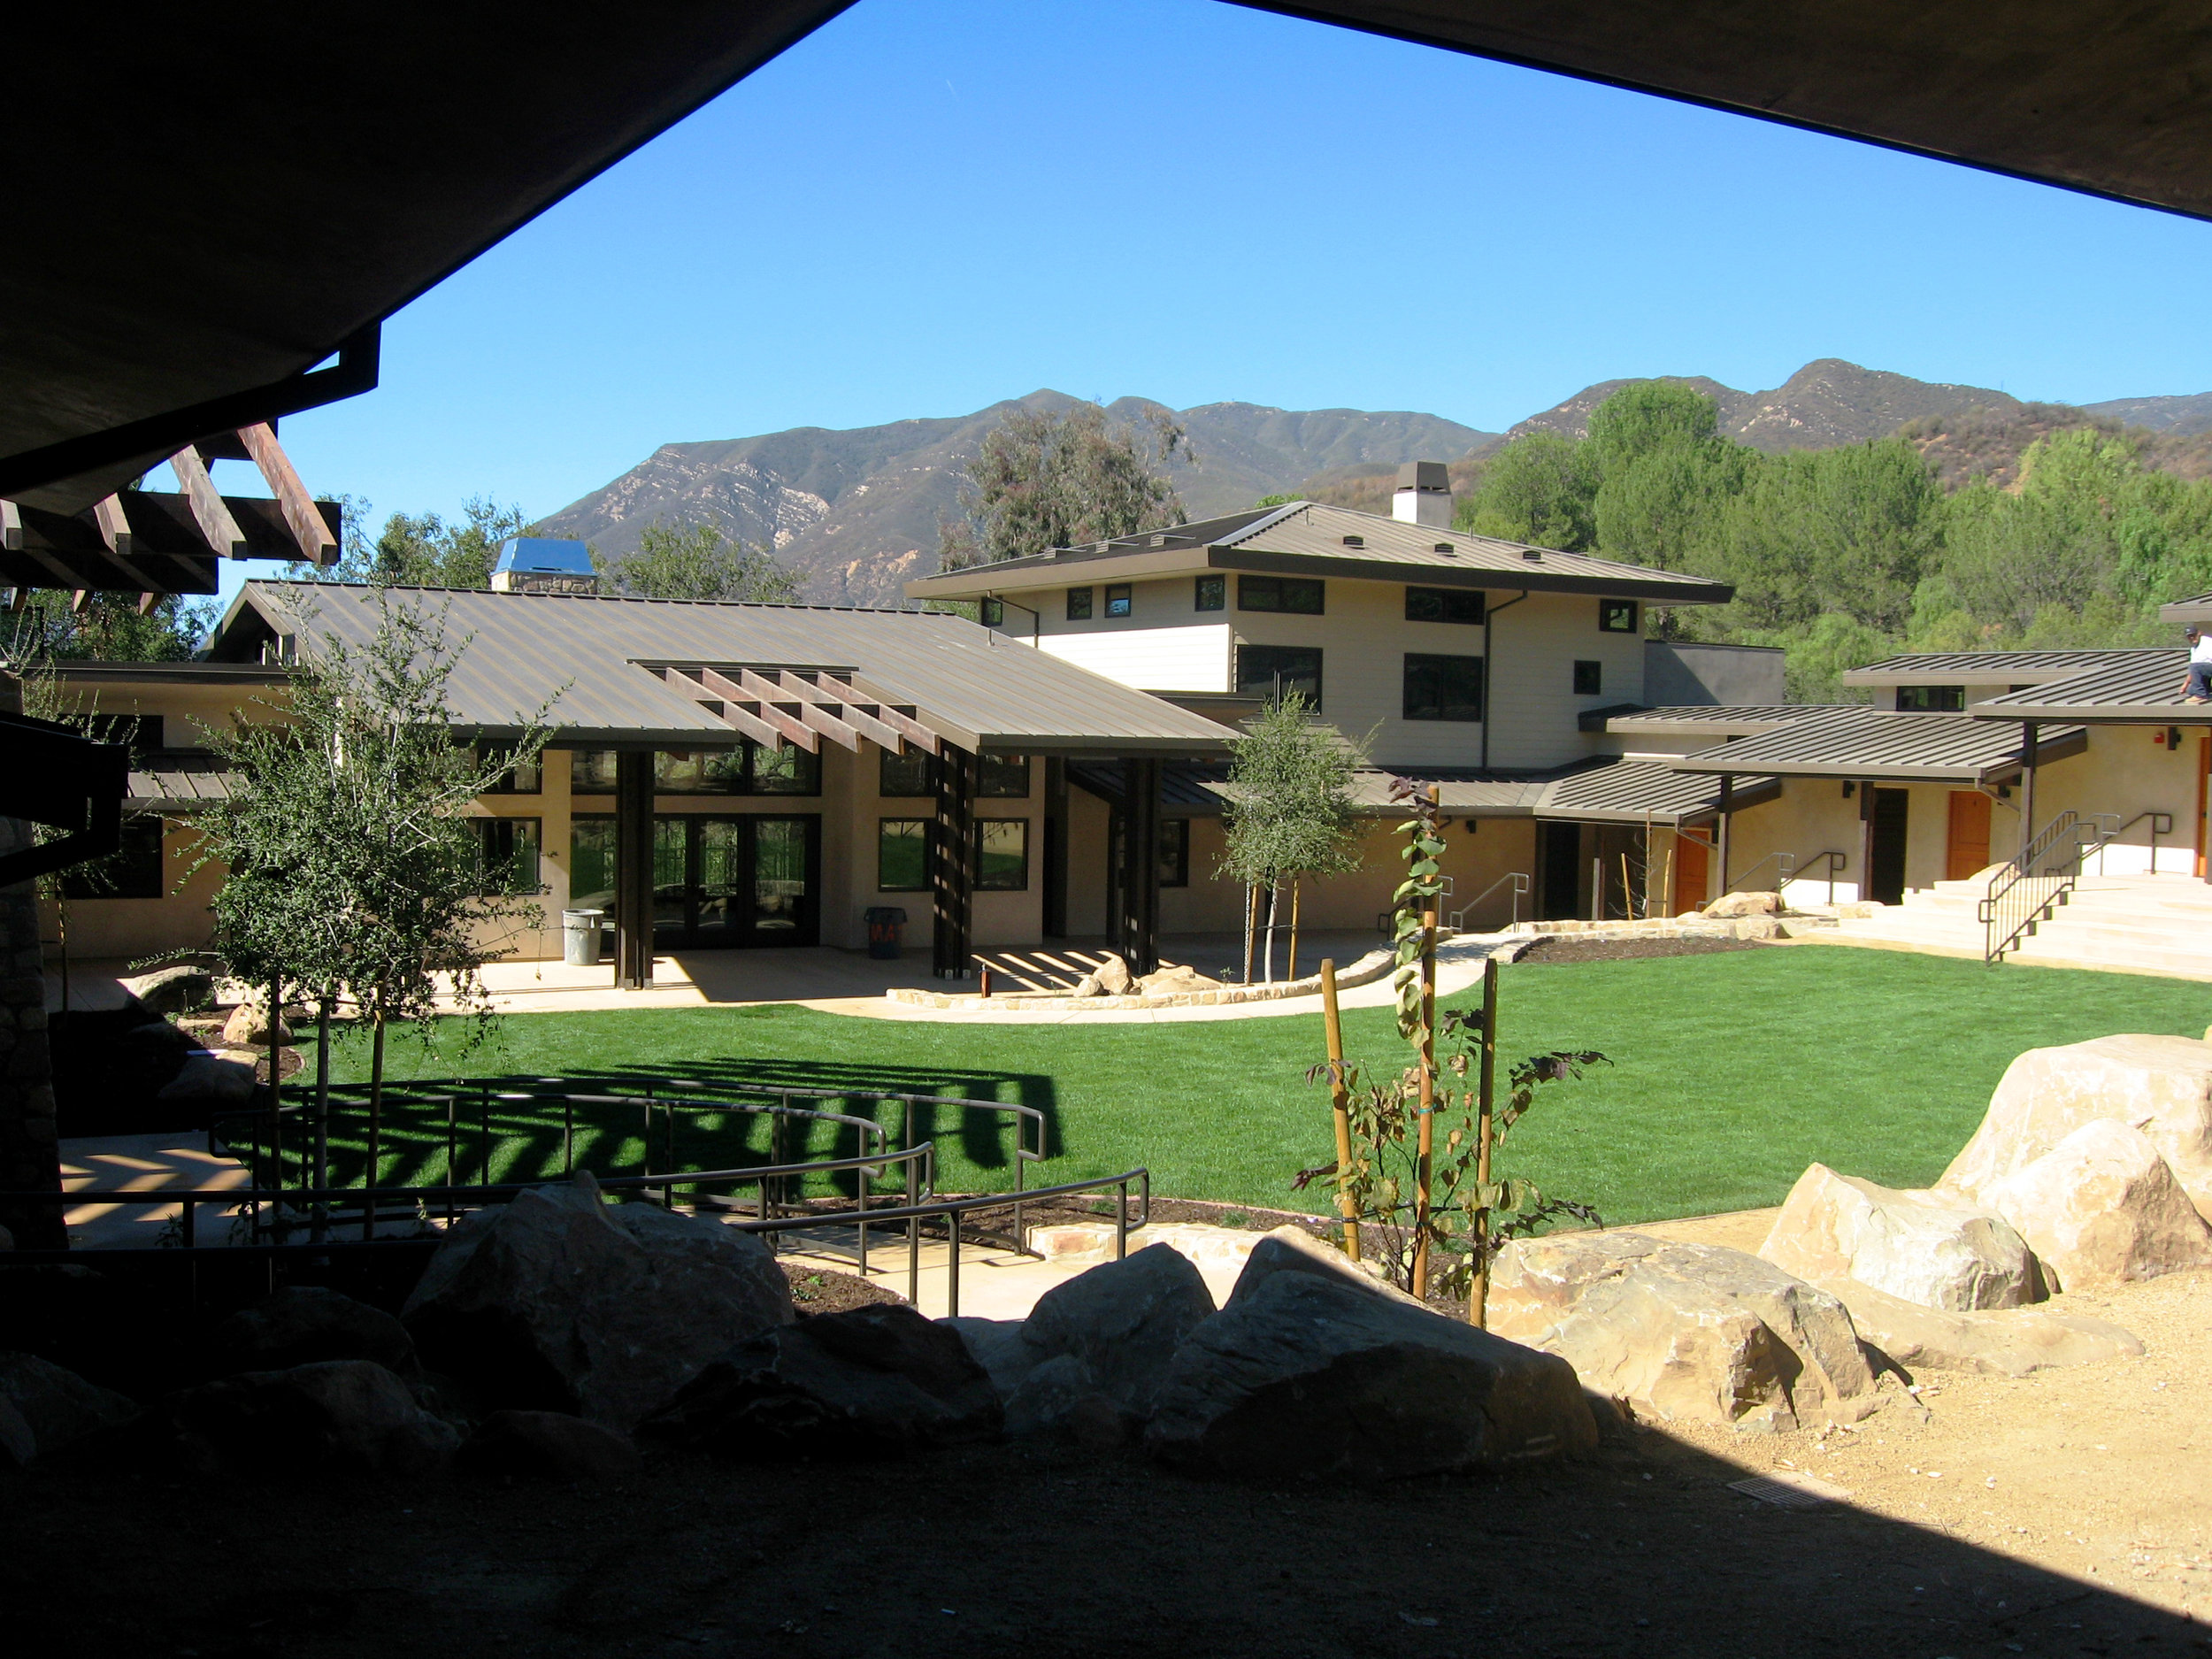 S.E.A.-Studio-Environmental-Architecture-David-Hertz-FAIA-Thacher-School-Dormitory-Ojai-sustainable-regenerative-restorative-green-design-educational-institutional-campus-master-plan-rustic-Ventura-mountain-scenic-biophilic-retreat-modern-ranch-13.jpg